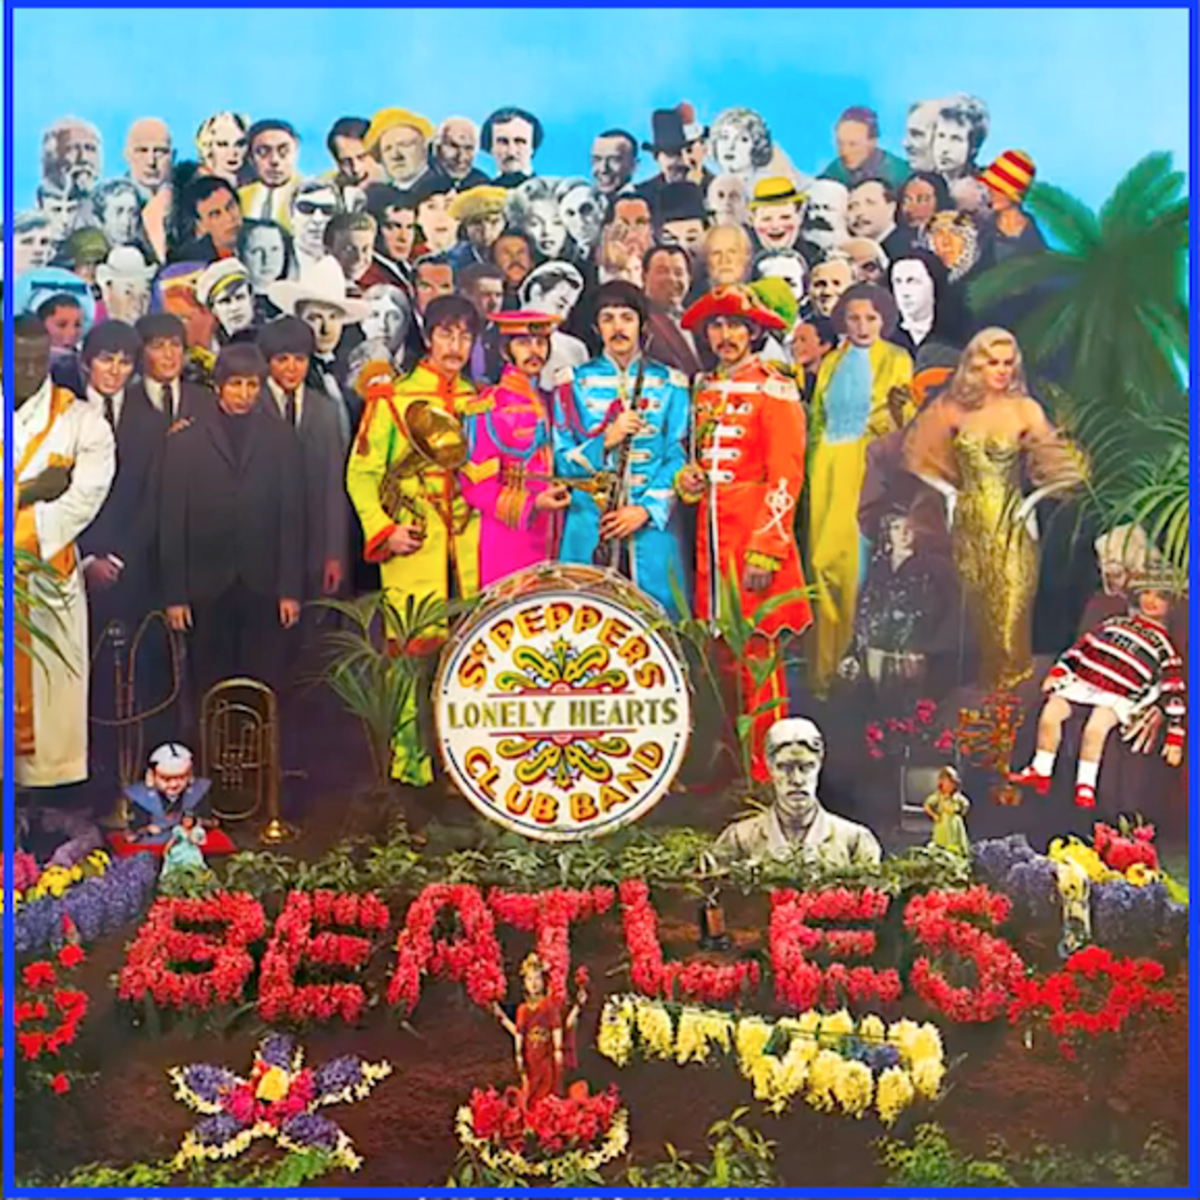 Stan Laurel and Oliver Hardy were picked by The Beatles to be one of 71 personalities on the cover of Sgt. Pepper's Lonely Heart Club Band album.